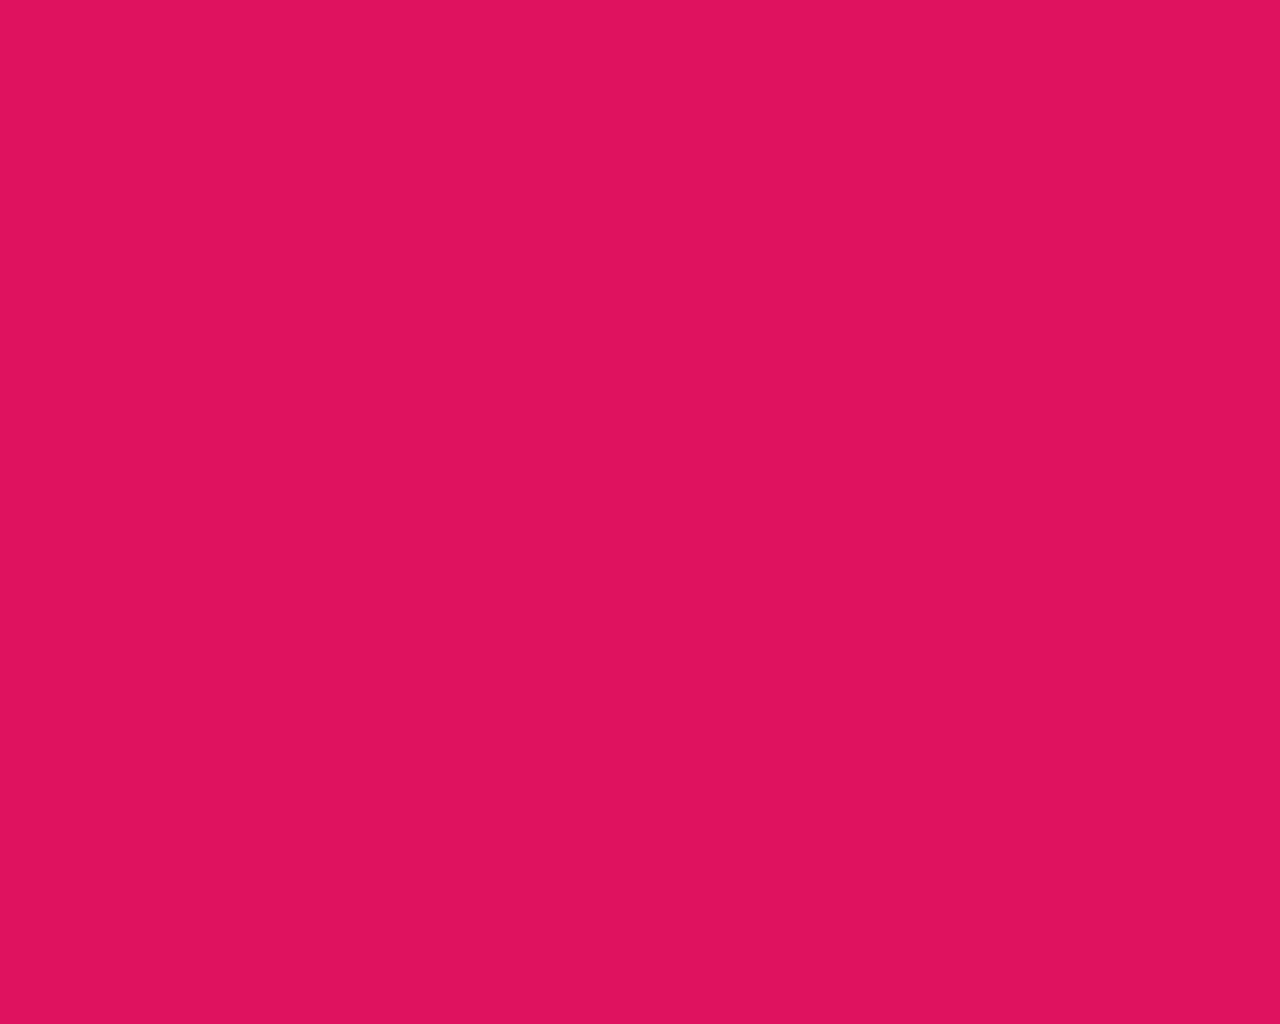 1280x1024 Ruby Solid Color Background